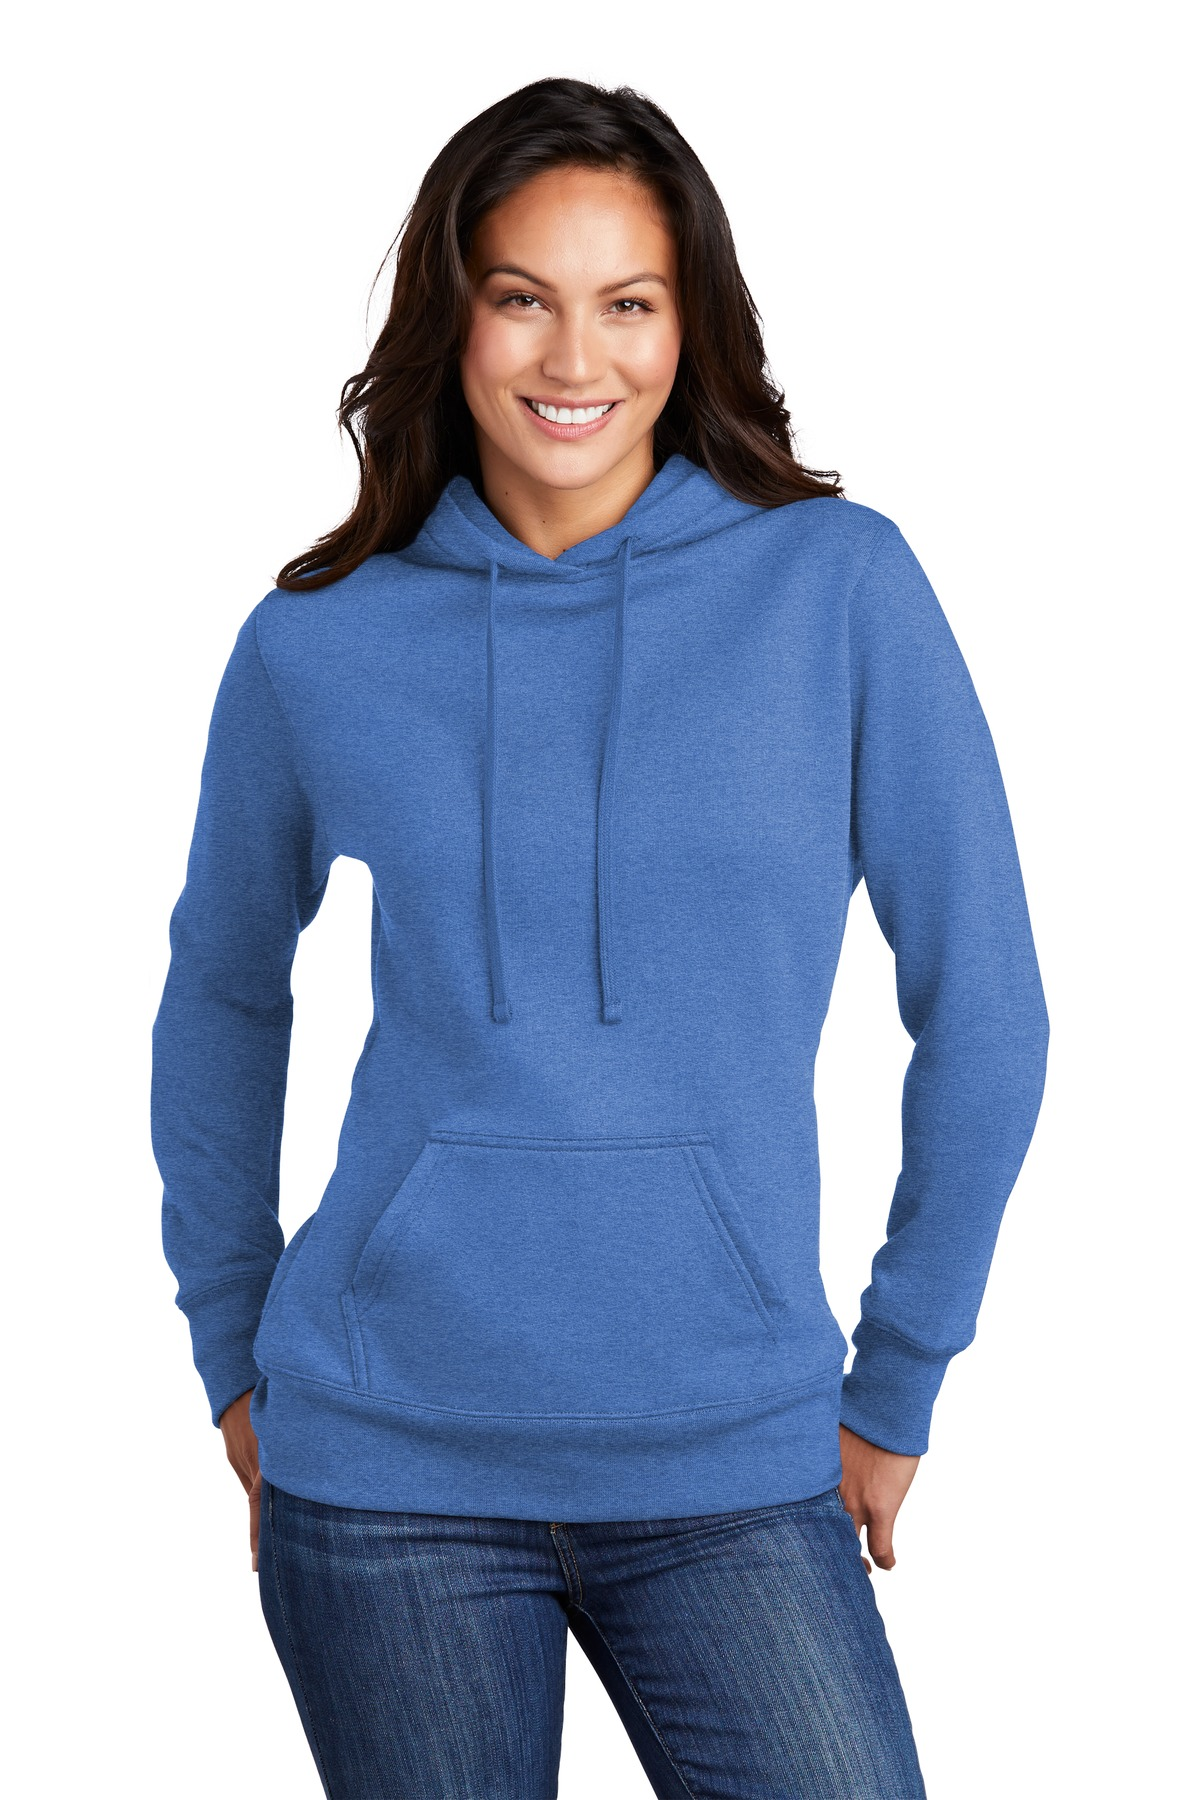 Port & Company  ®  Ladies Core Fleece Pullover Hooded Sweatshirt LPC78H - Heather Royal